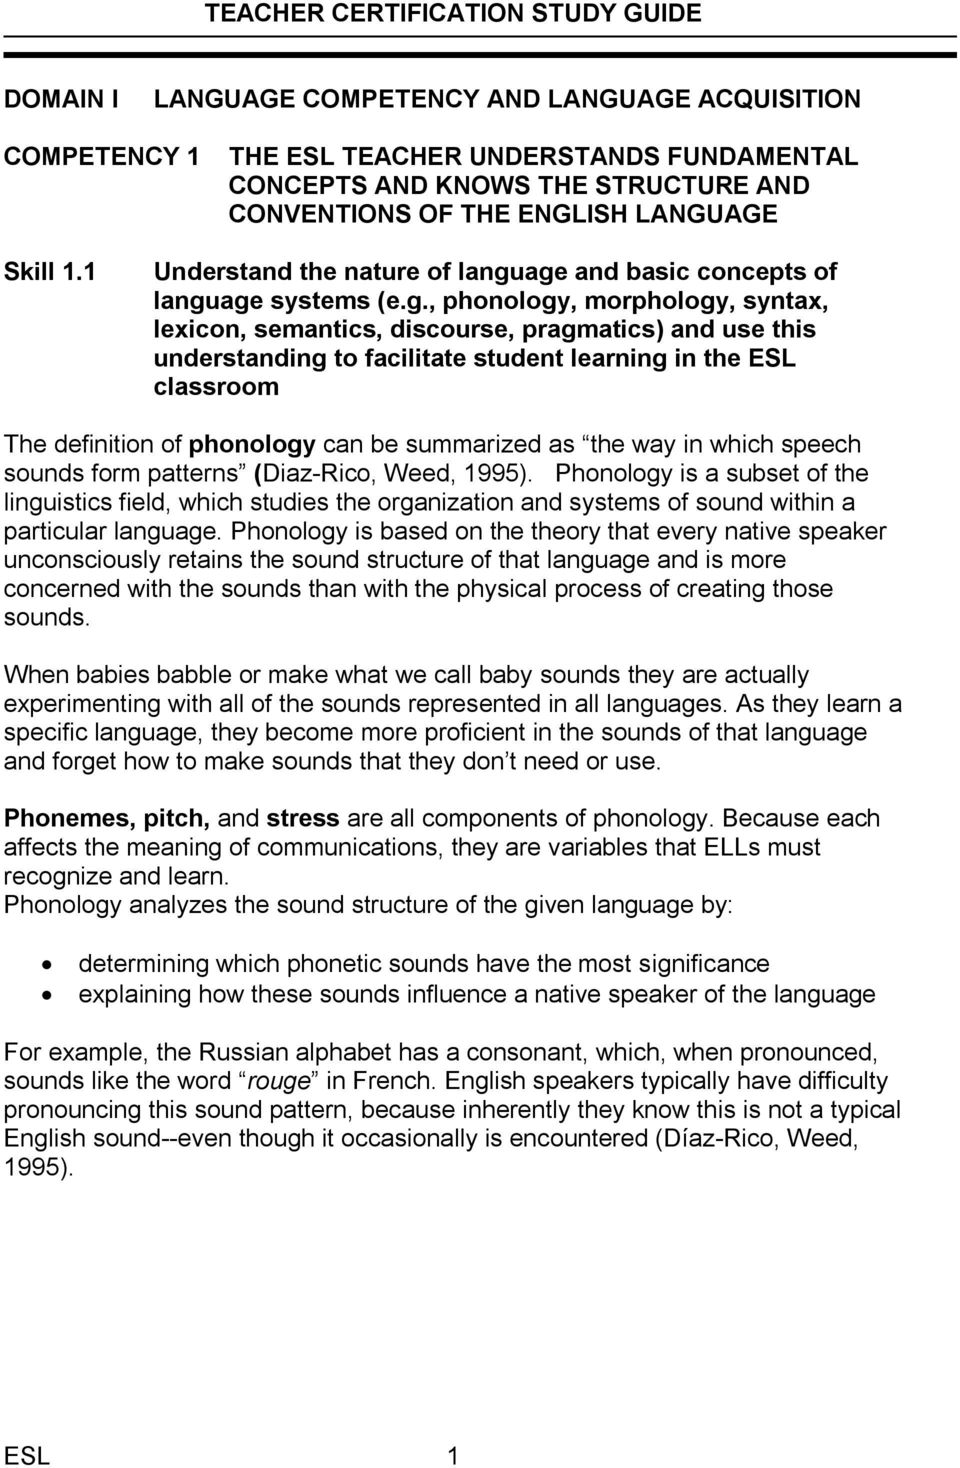 age and basic concepts of language systems (e.g., phonology, morphology, syntax, lexicon, semantics, discourse, pragmatics) and use this understanding to facilitate student learning in the ESL